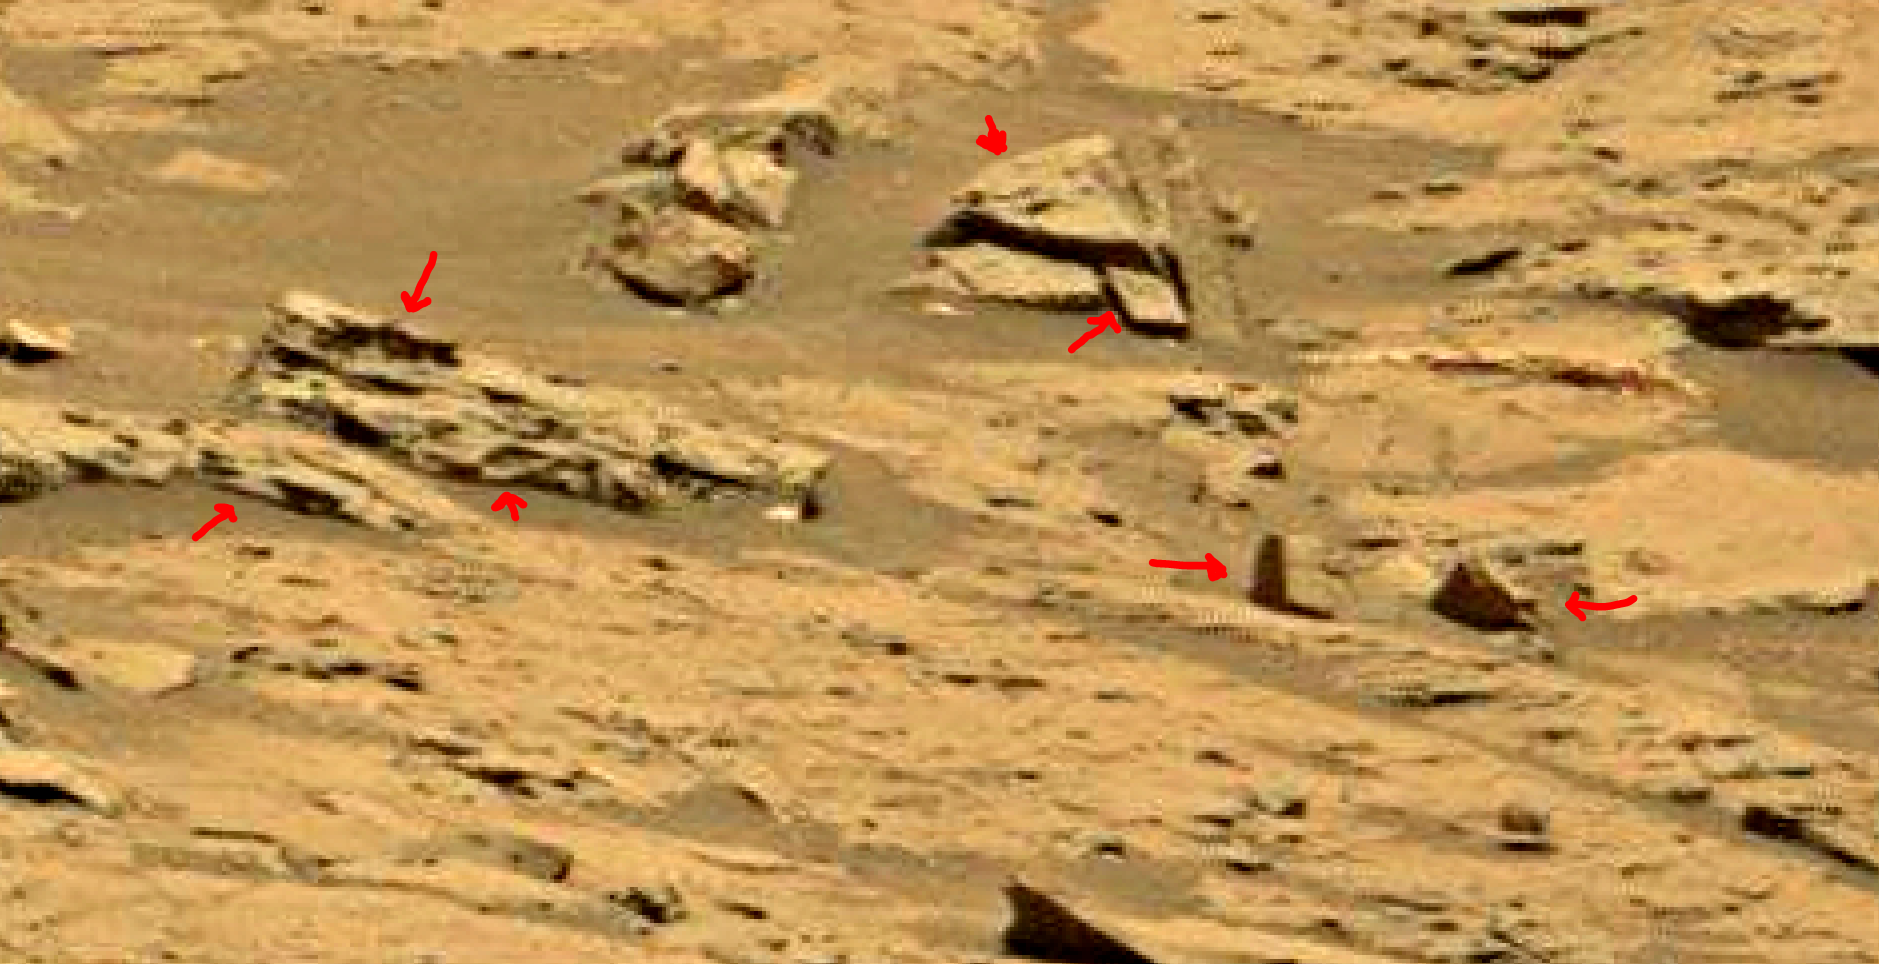 mars sol 1353 anomaly-artifacts 62 was life on mars